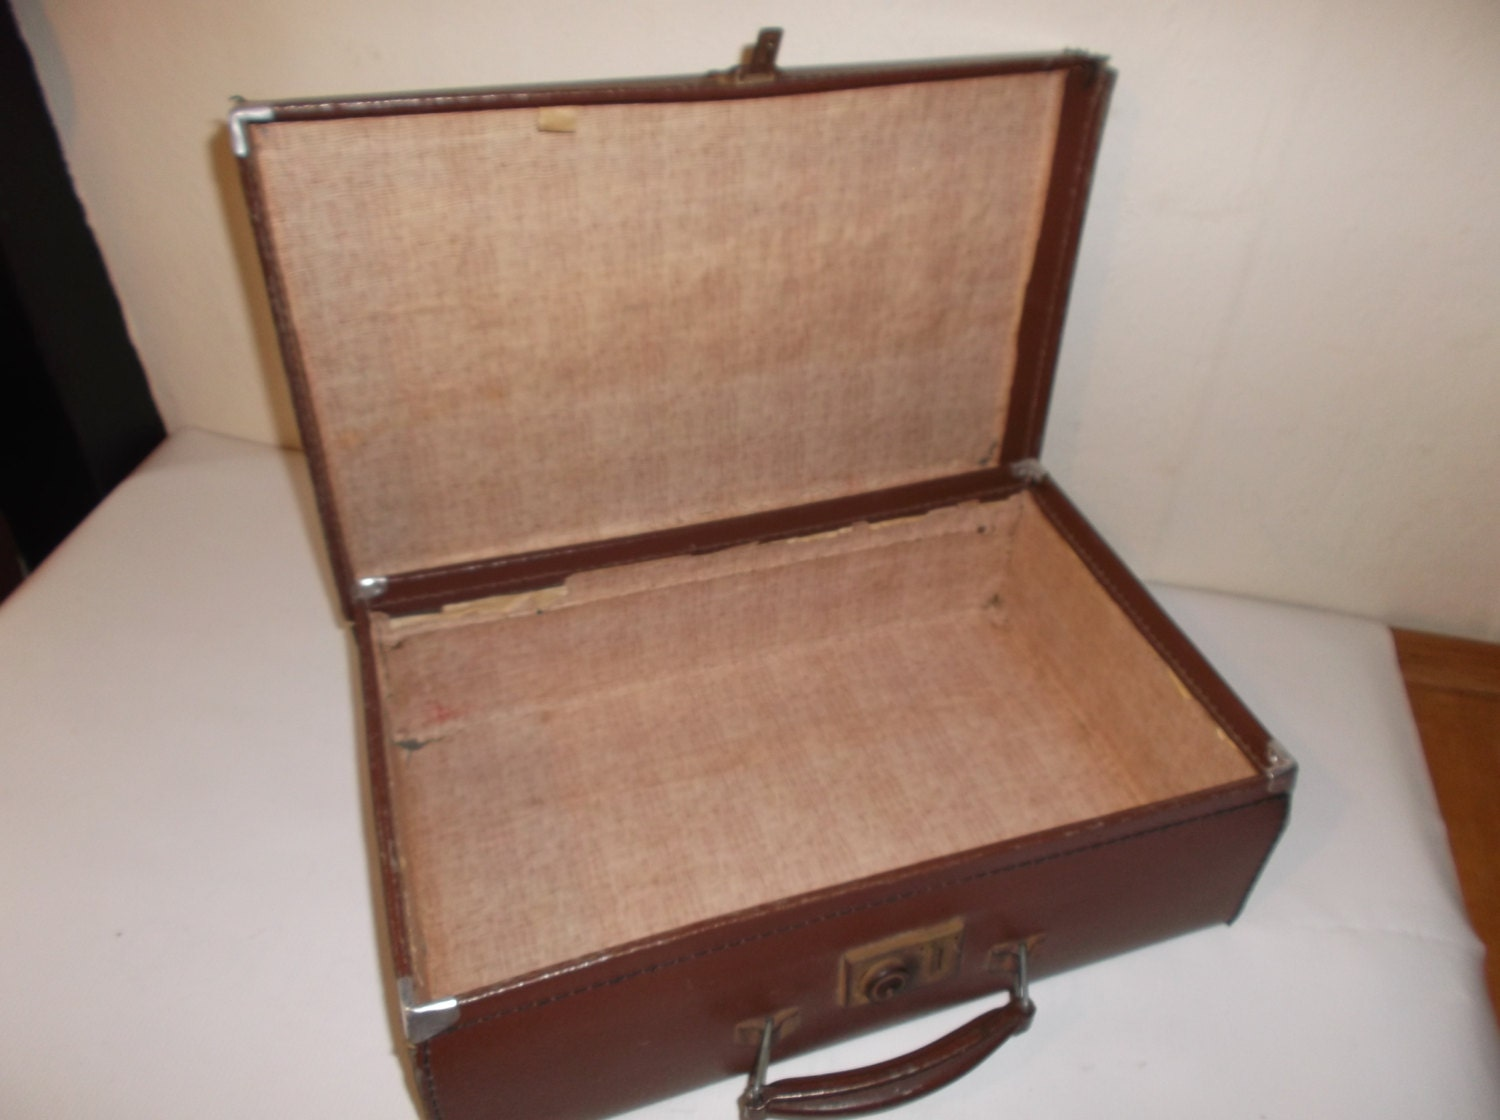 Vintage Train Travel Suitcase Grooming and Toiletries Case